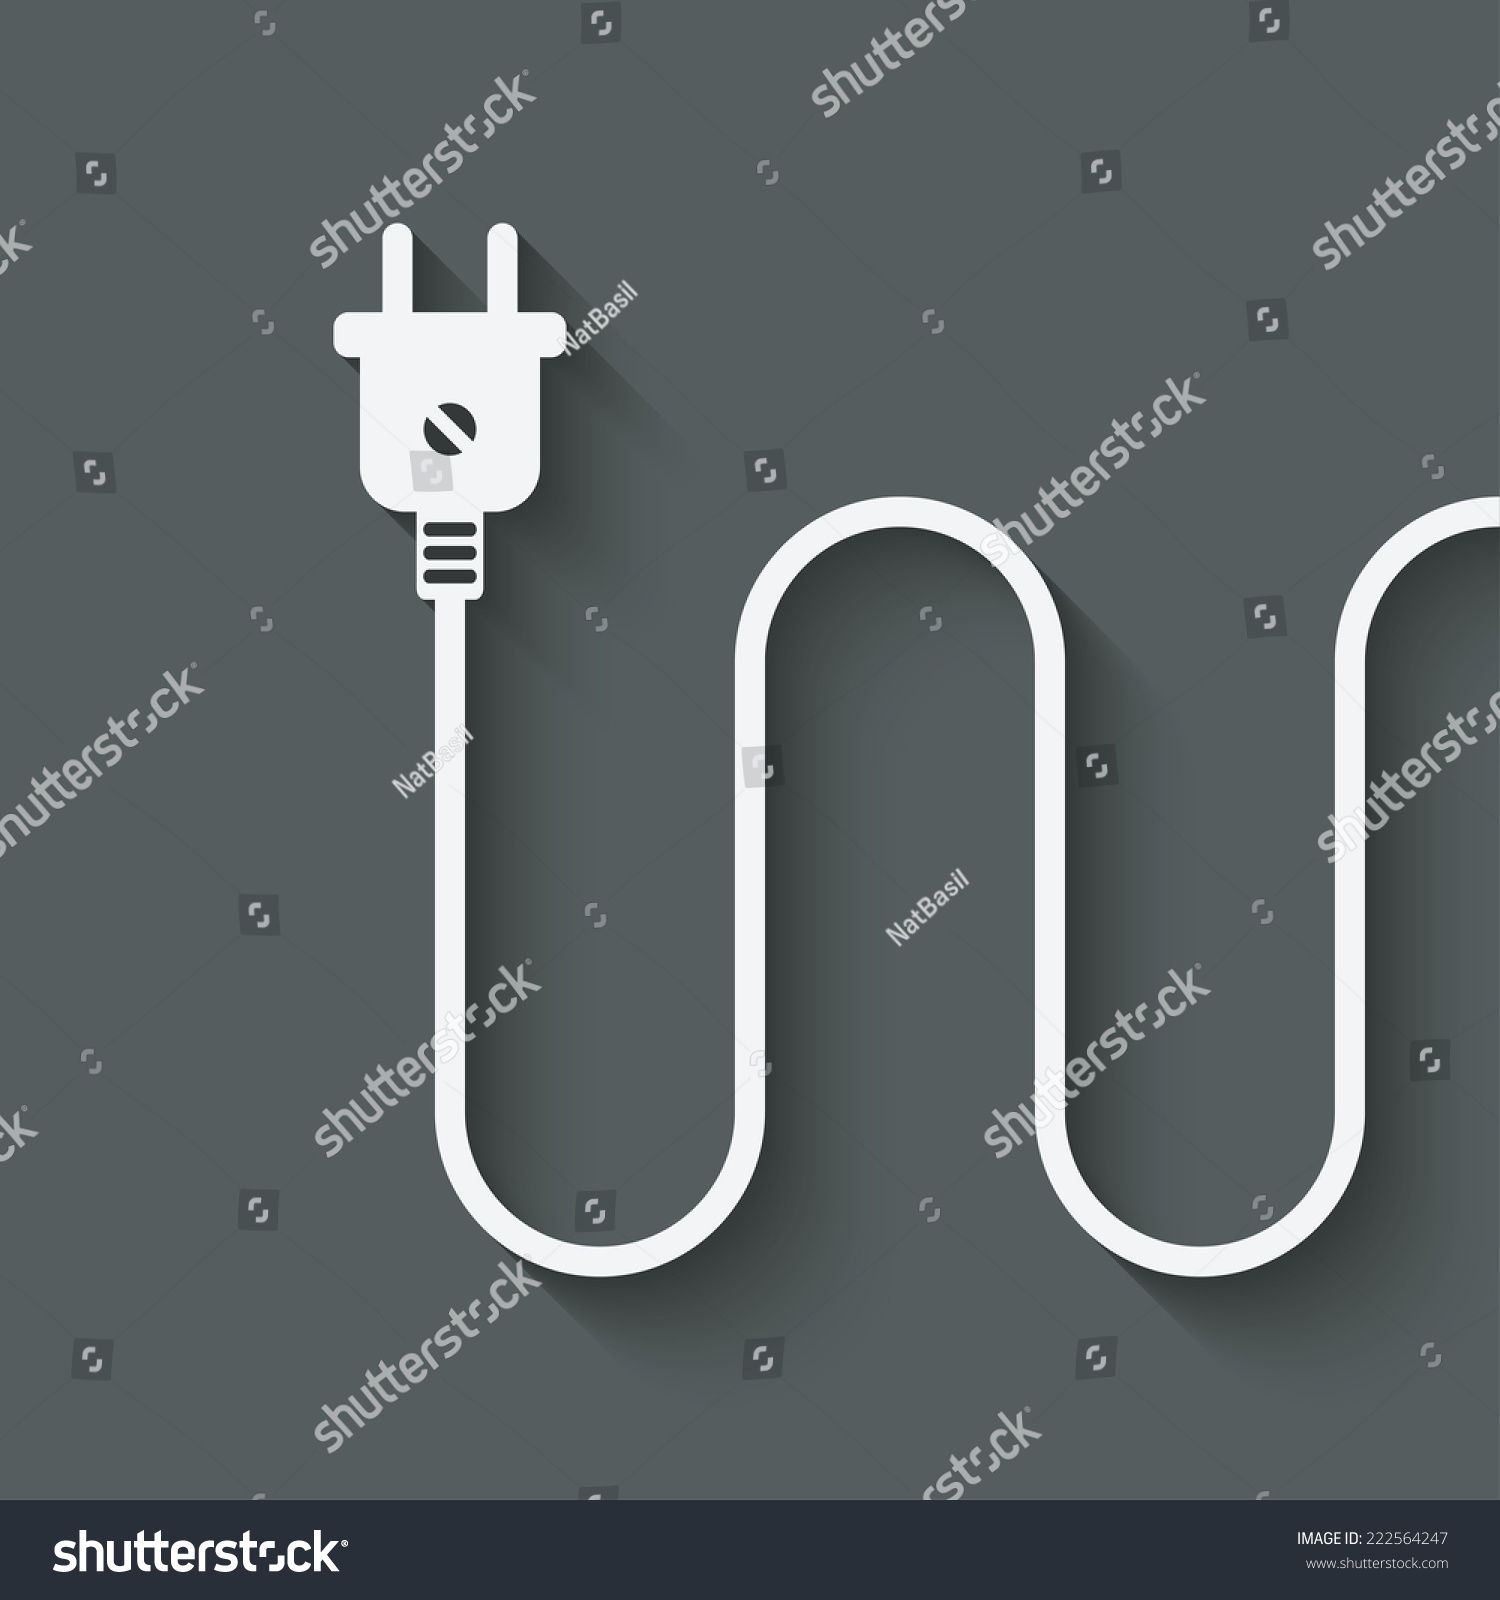 Electric Wire Plug Vector Illustration Eps Stock Vector (Royalty ...